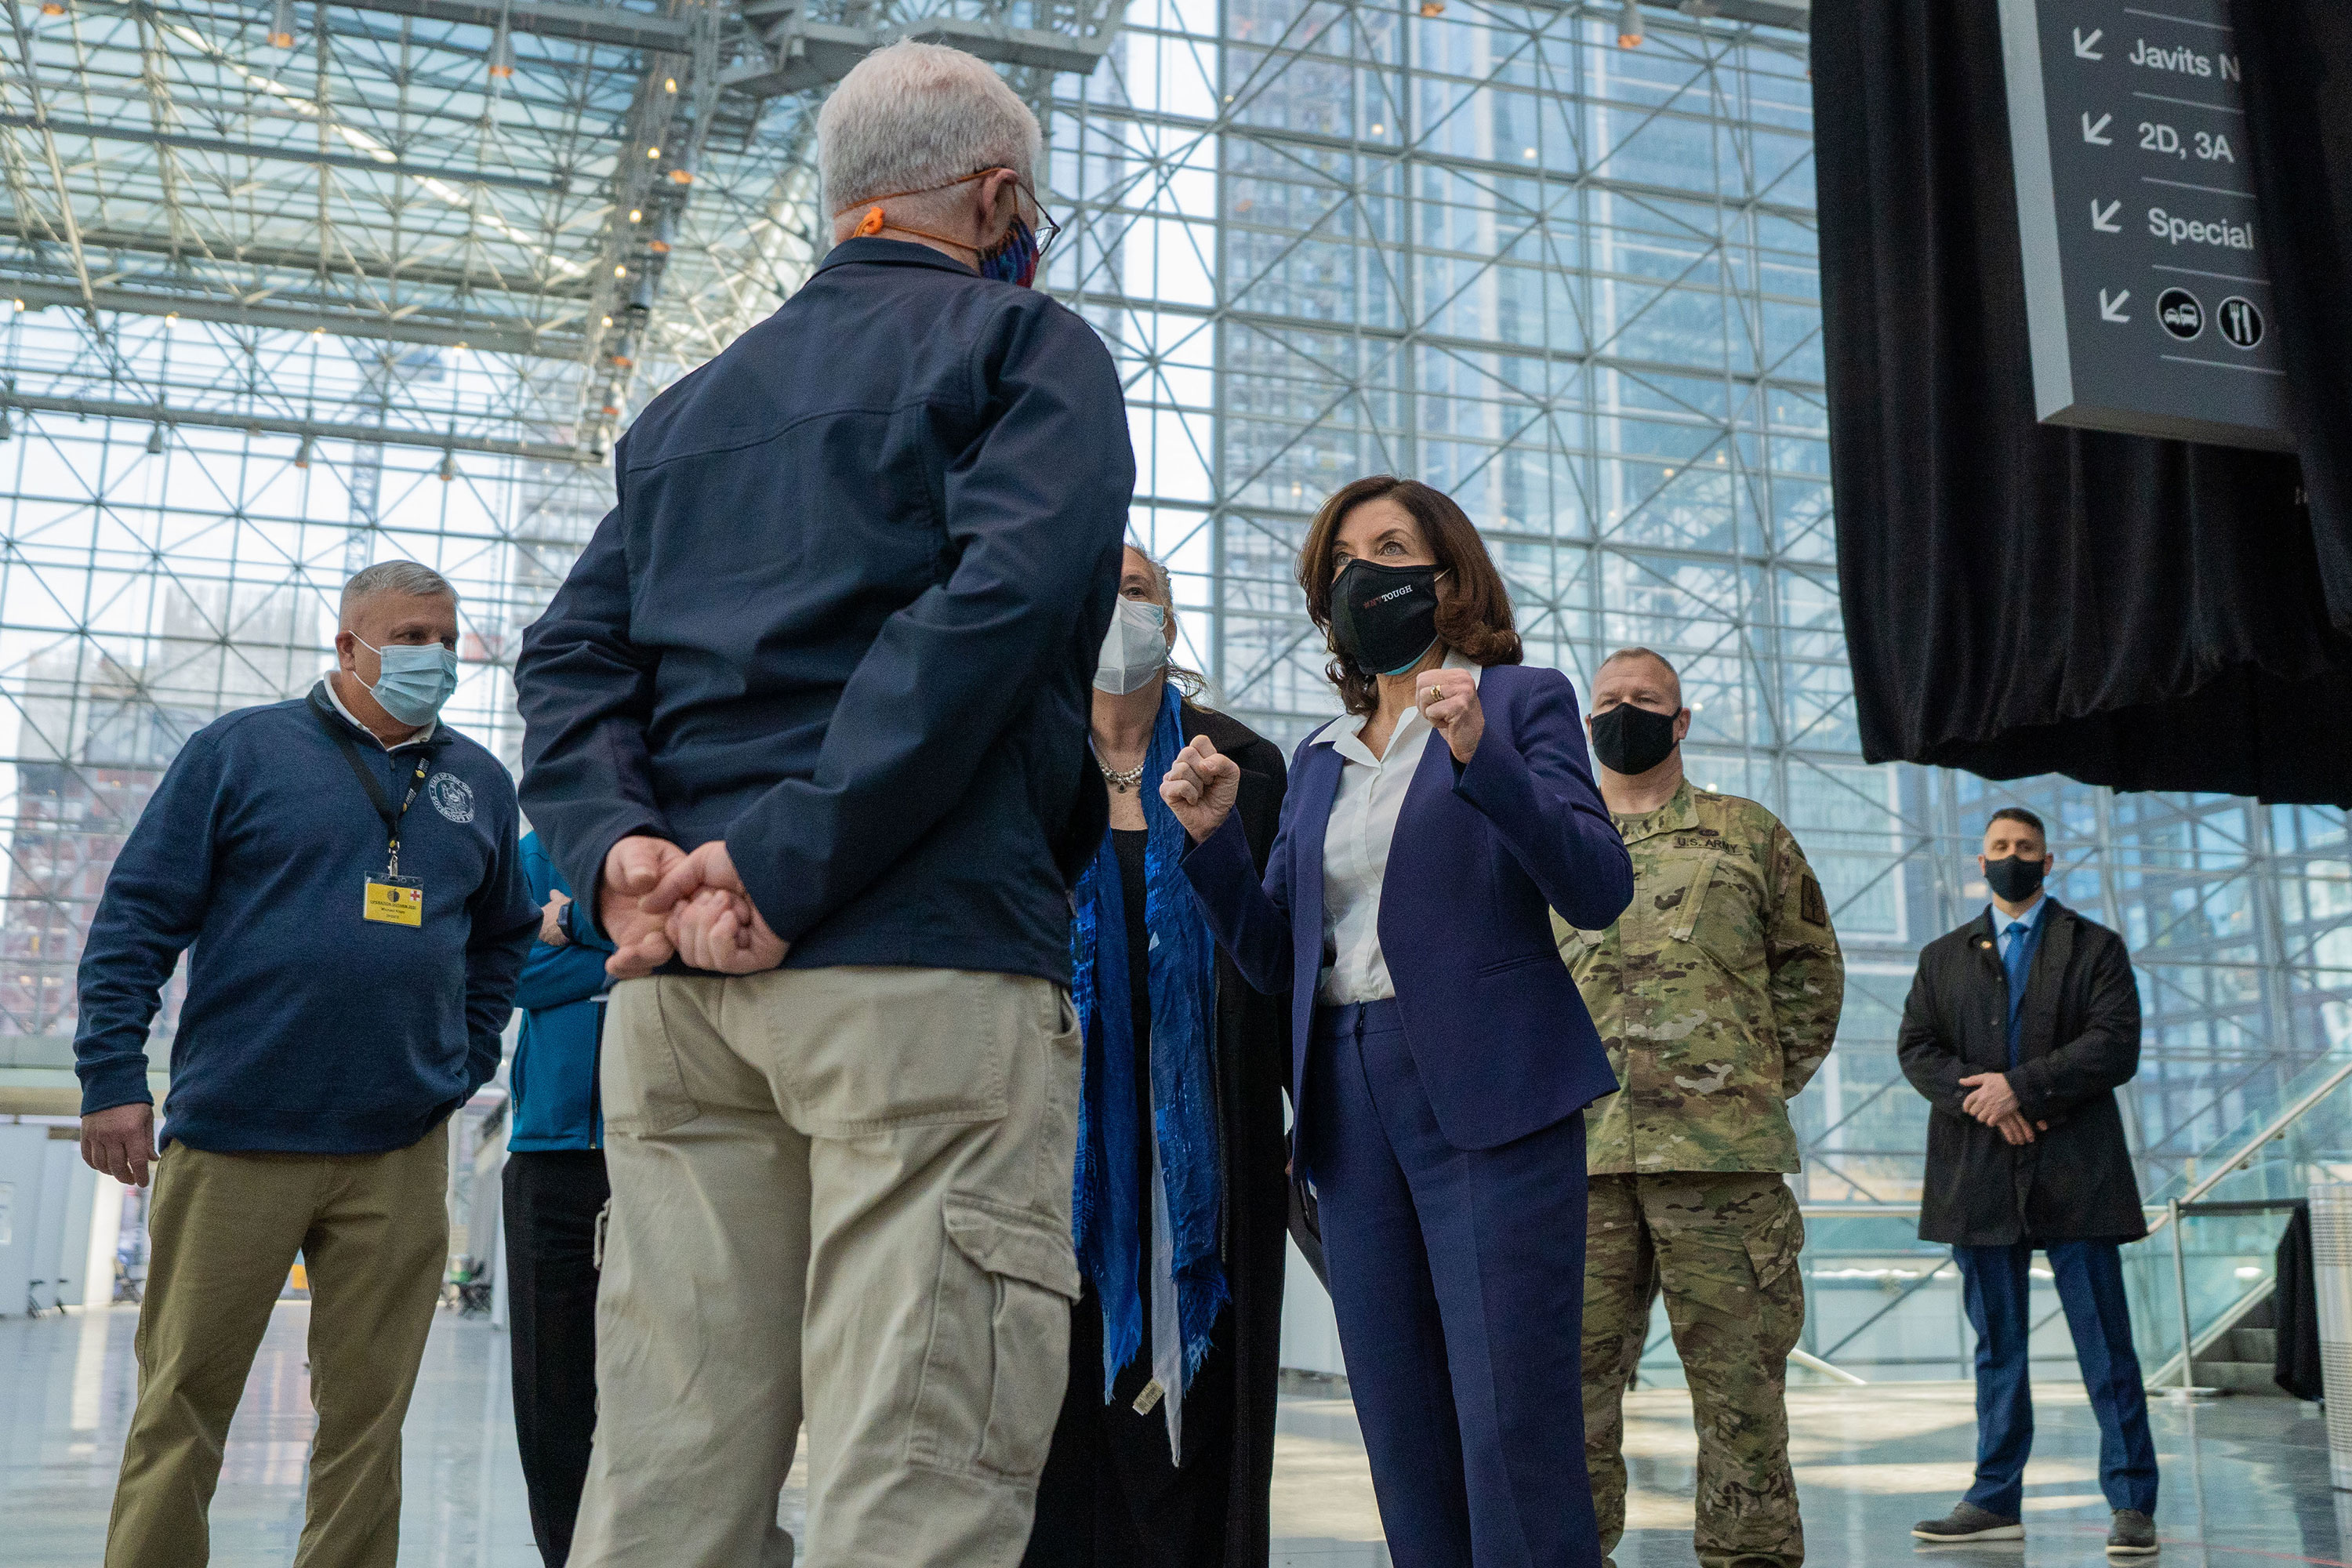 Then Lt. Gov. Kathy Hochul speaks with Dr. Eugene Heslin, 1st deputy commissioner of the New York State Department regarding state efforts to provide mass COVID-19 vaccinations administered by the NYS Dept of Health in at the Javits Center in Manhattan, February 10, 2021.